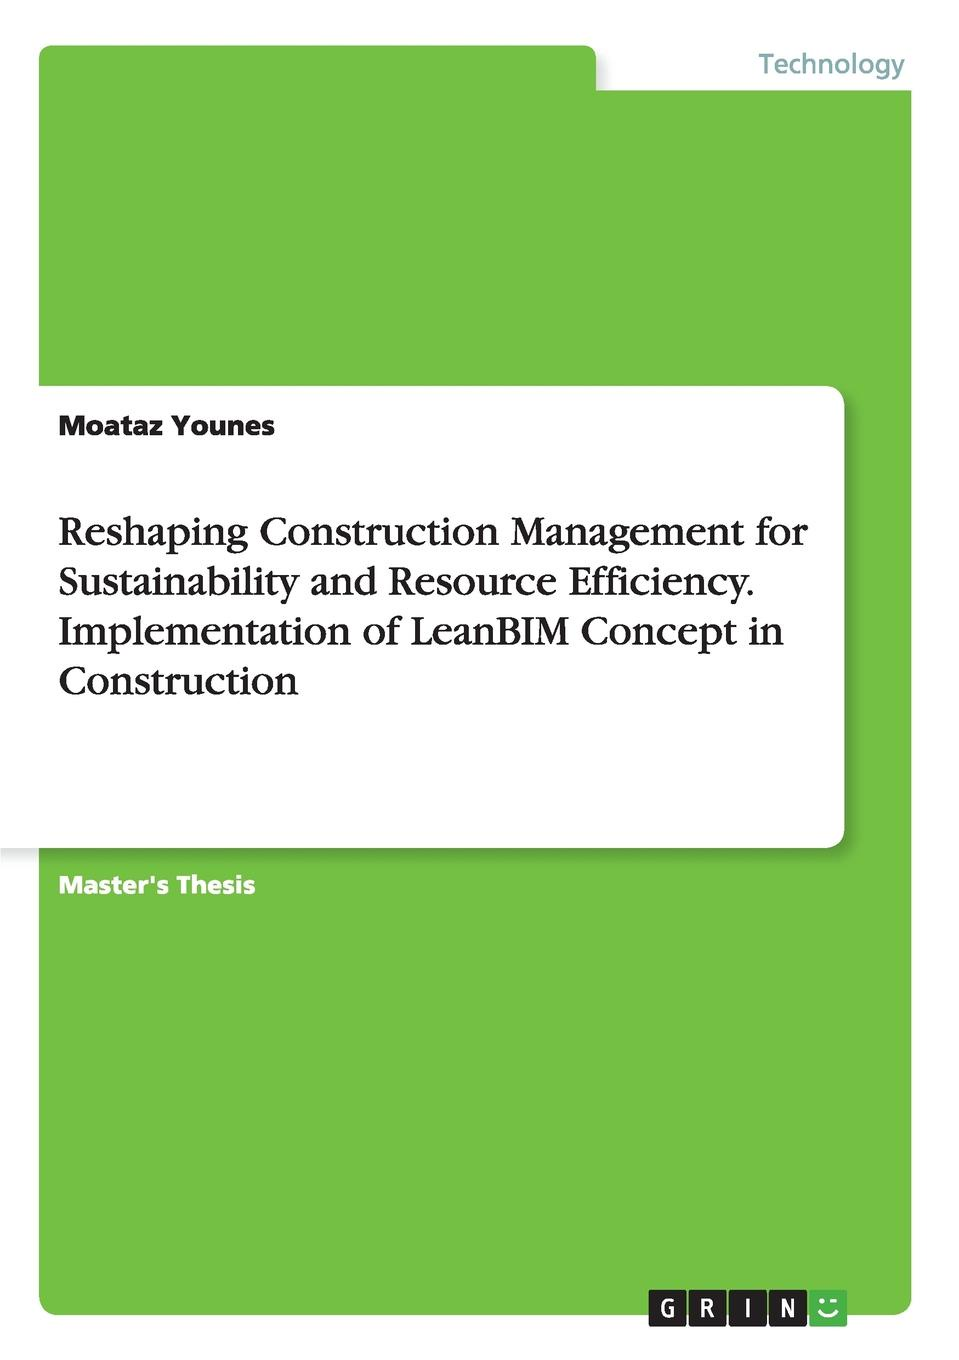 Moataz Younes Reshaping Construction Management for Sustainability and Resource Efficiency. Implementation of LeanBIM Concept in Construction moataz younes reshaping construction management for sustainability and resource efficiency implementation of leanbim concept in construction